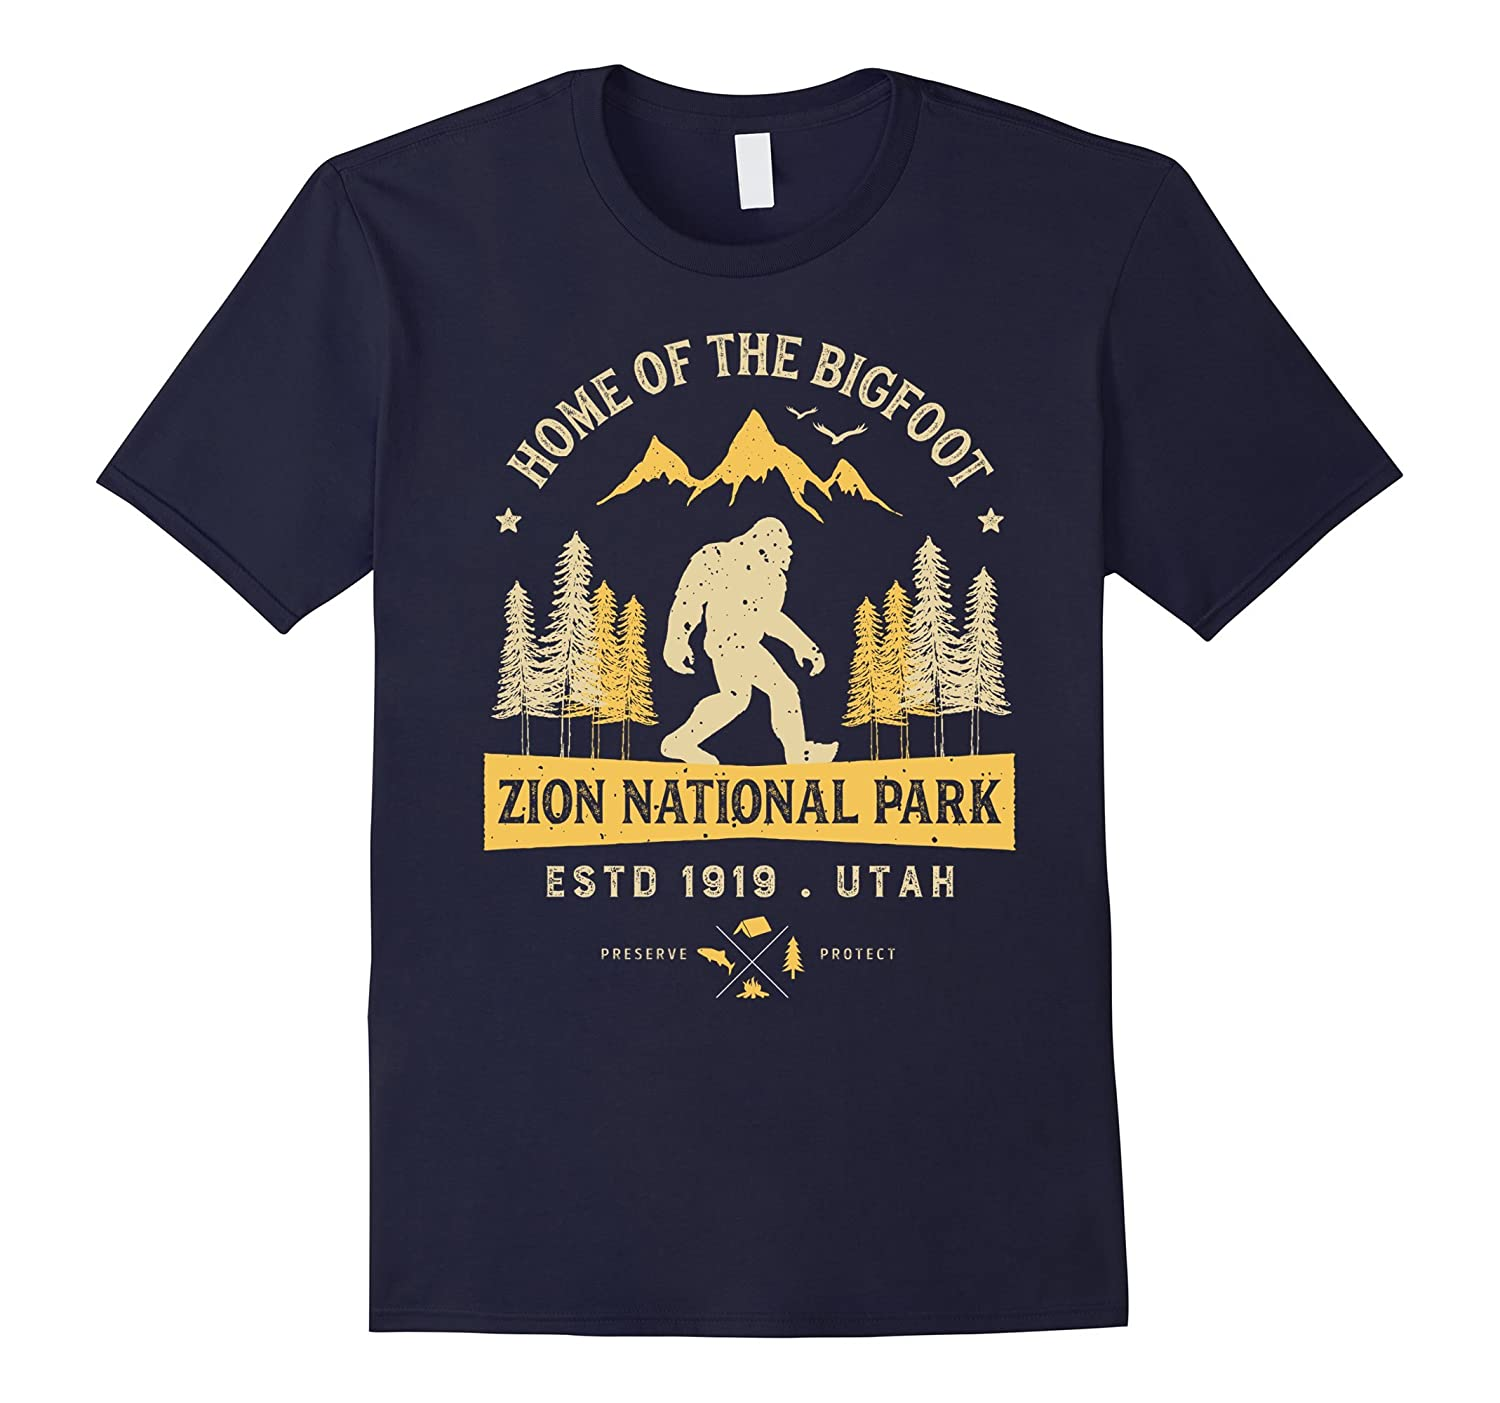 Zion National Park Vintage Bigfoot Utah T Shirt Men Women-TH